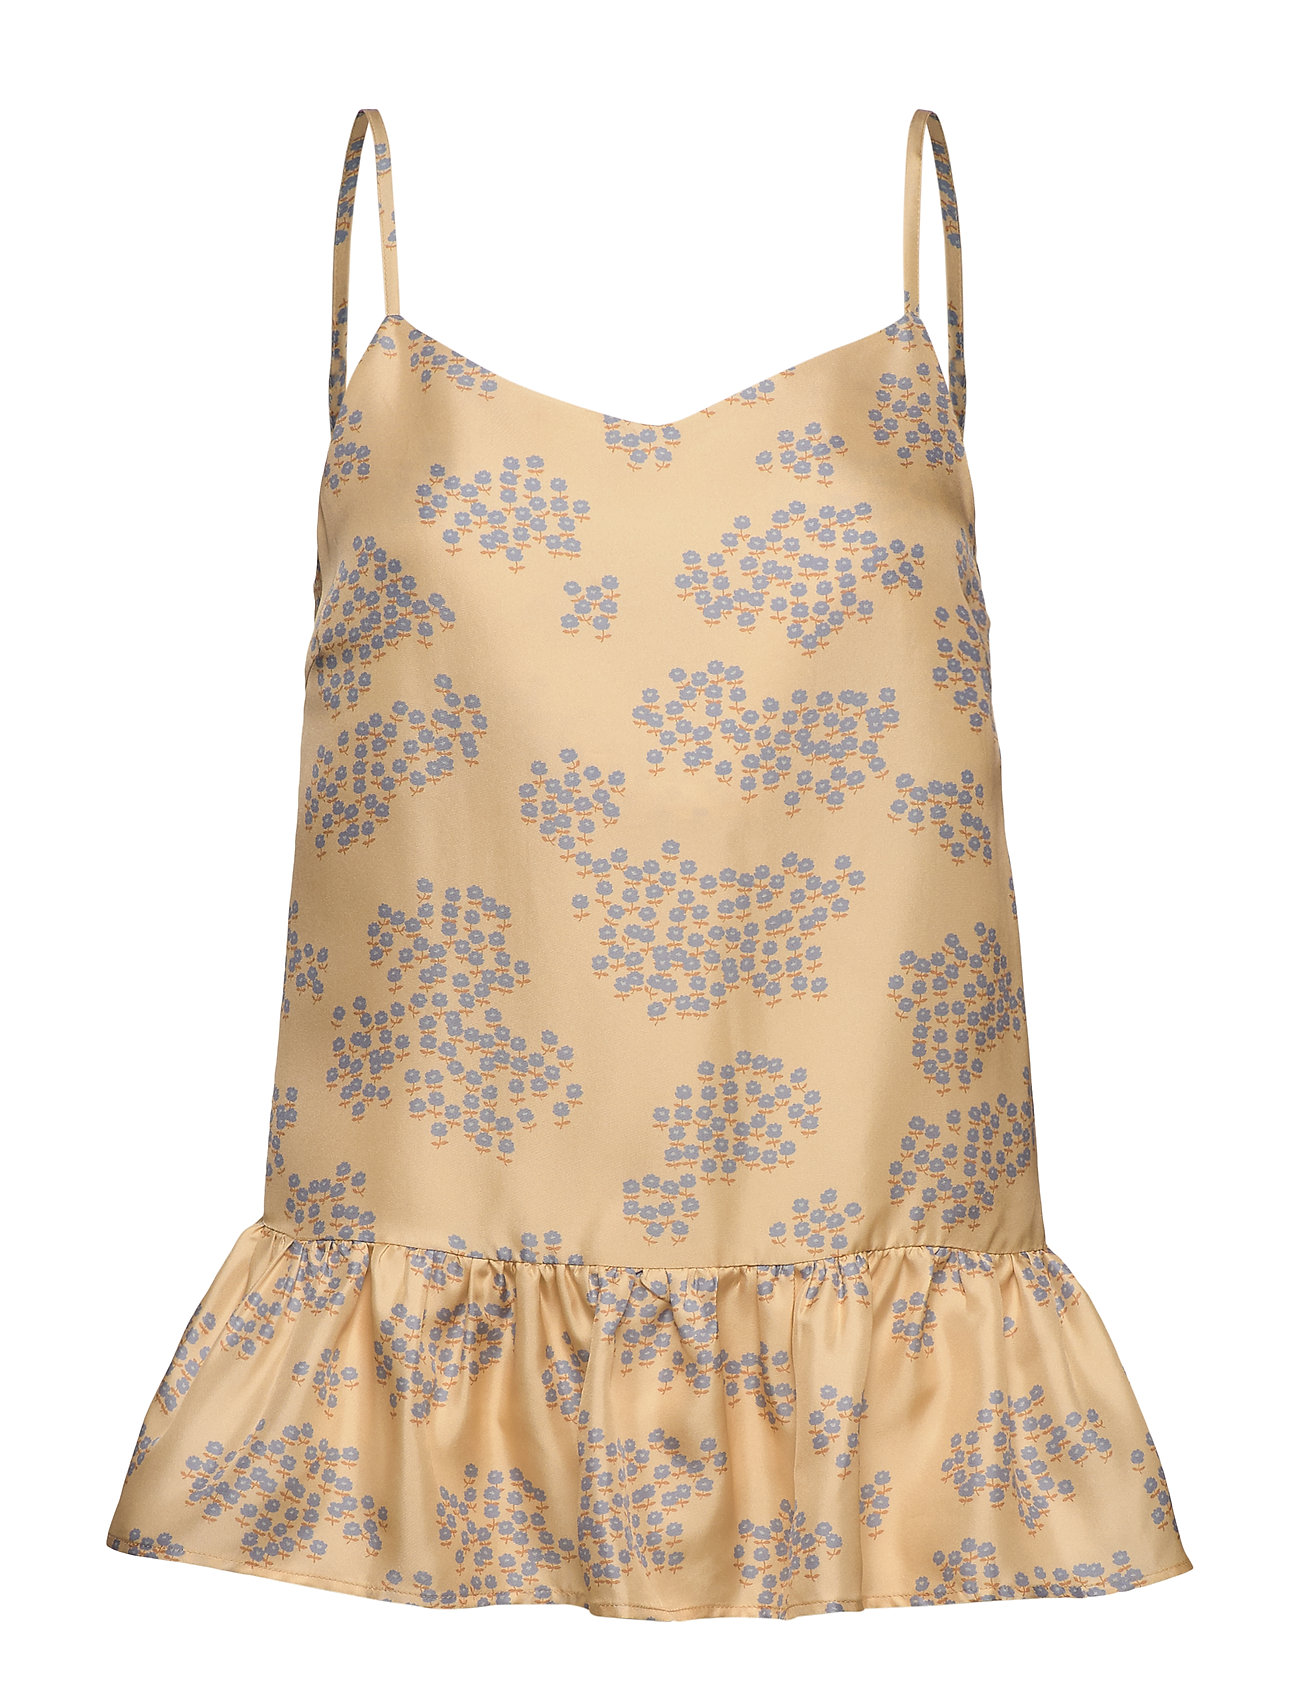 Lovechild 1979 Yna Top - CLOUD CREAM